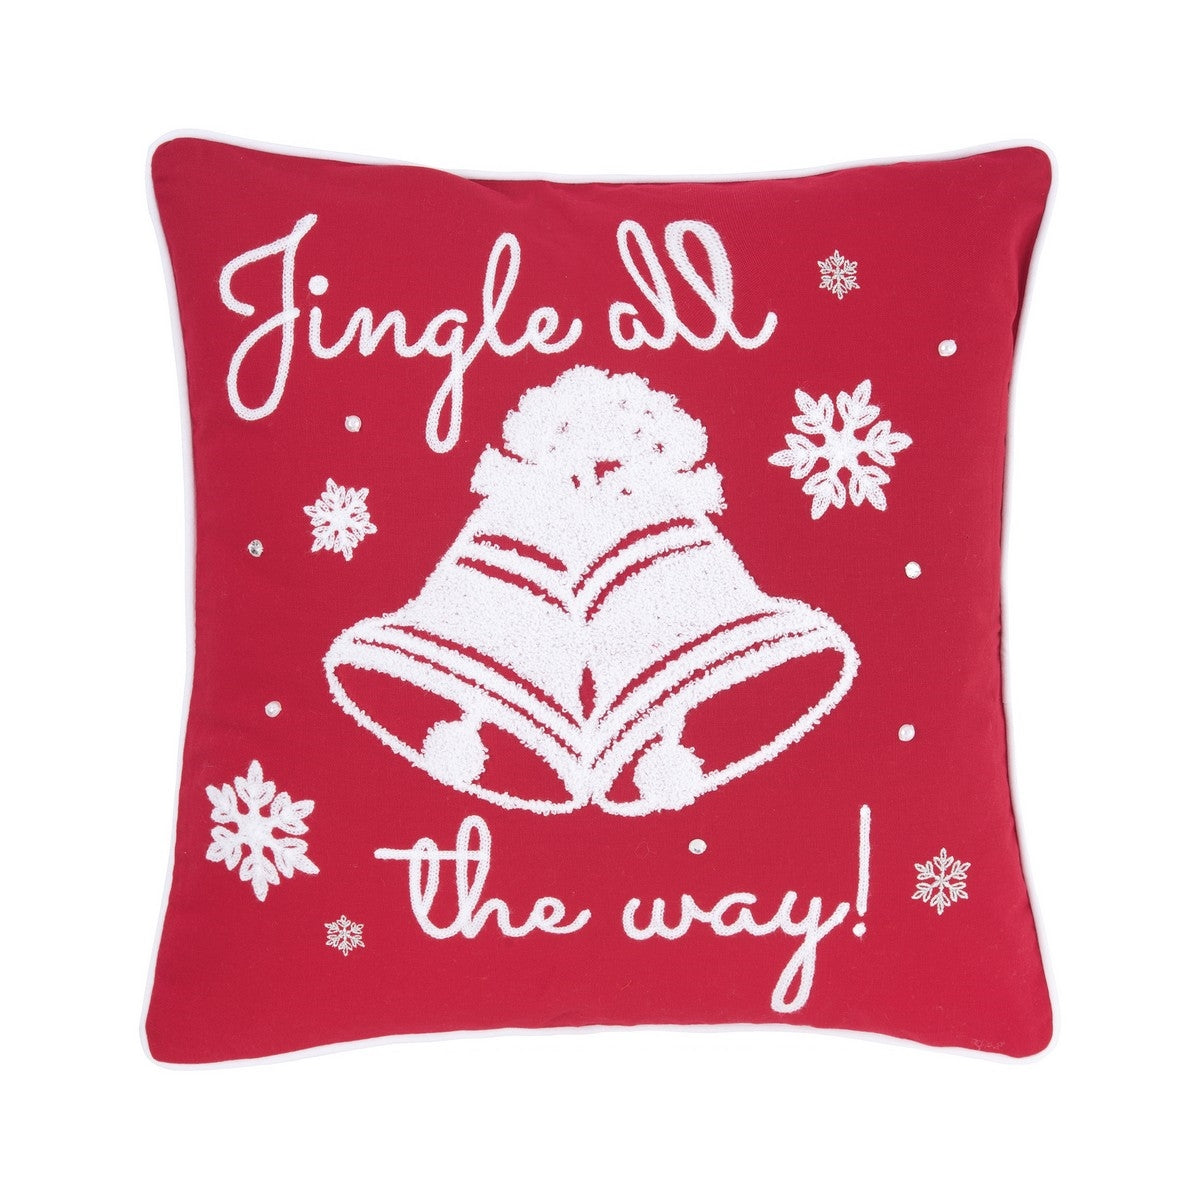 Jingle All the Way Pillow